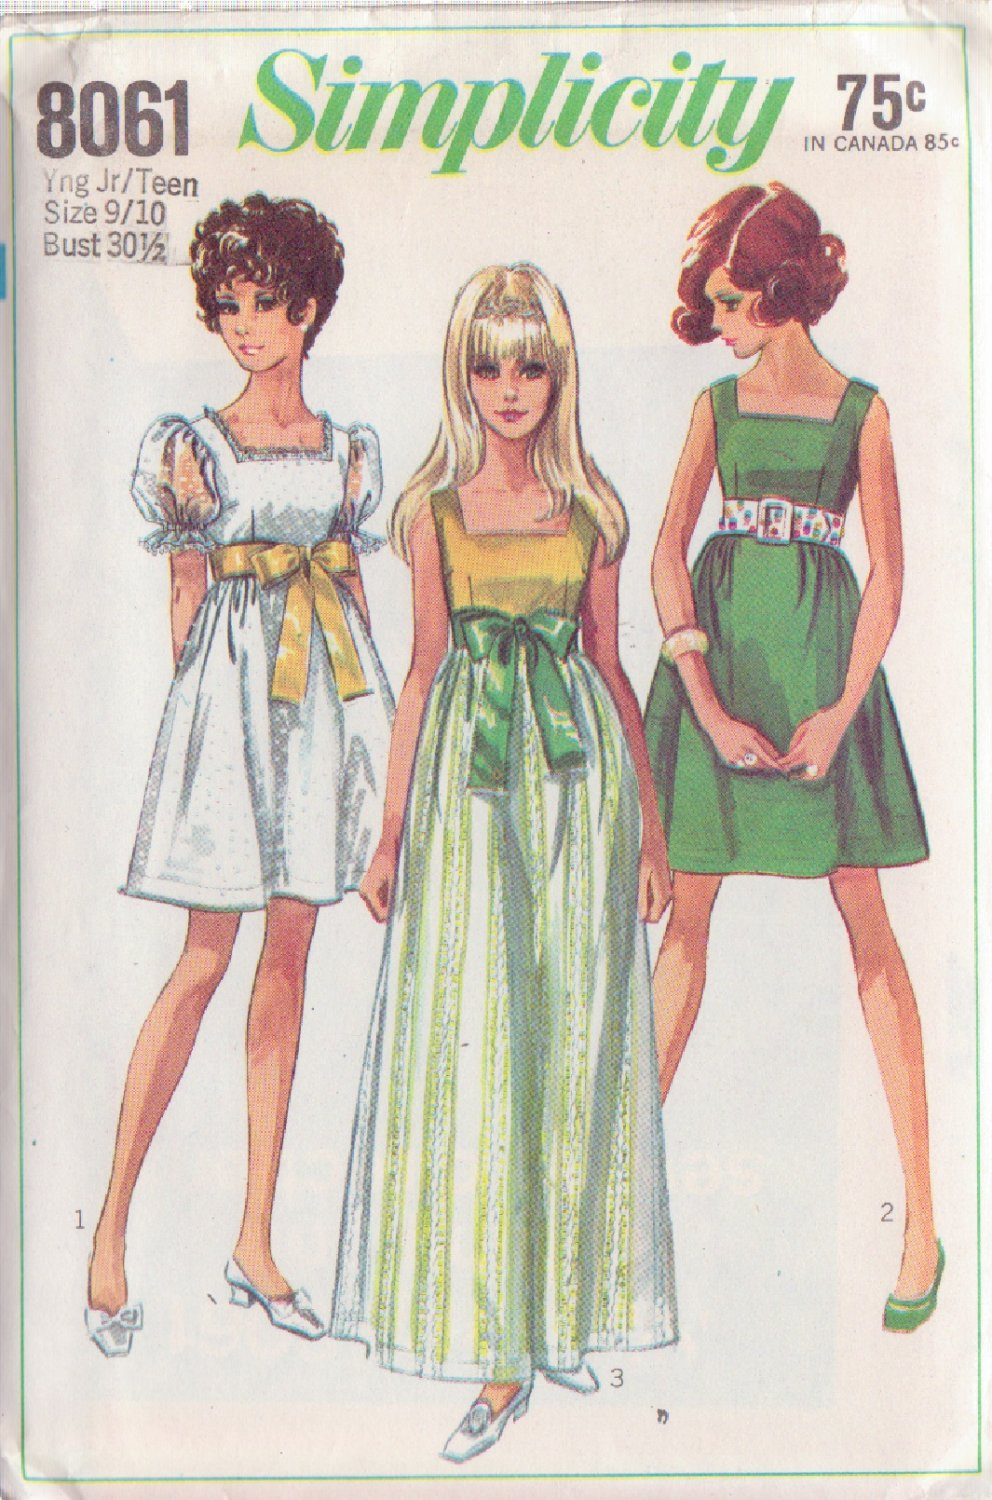 SIMPLICITY VINTAGE PATTERN 8061 YNG JR/TEEN DRESS IN 2 LENGTHS SZ 9/10